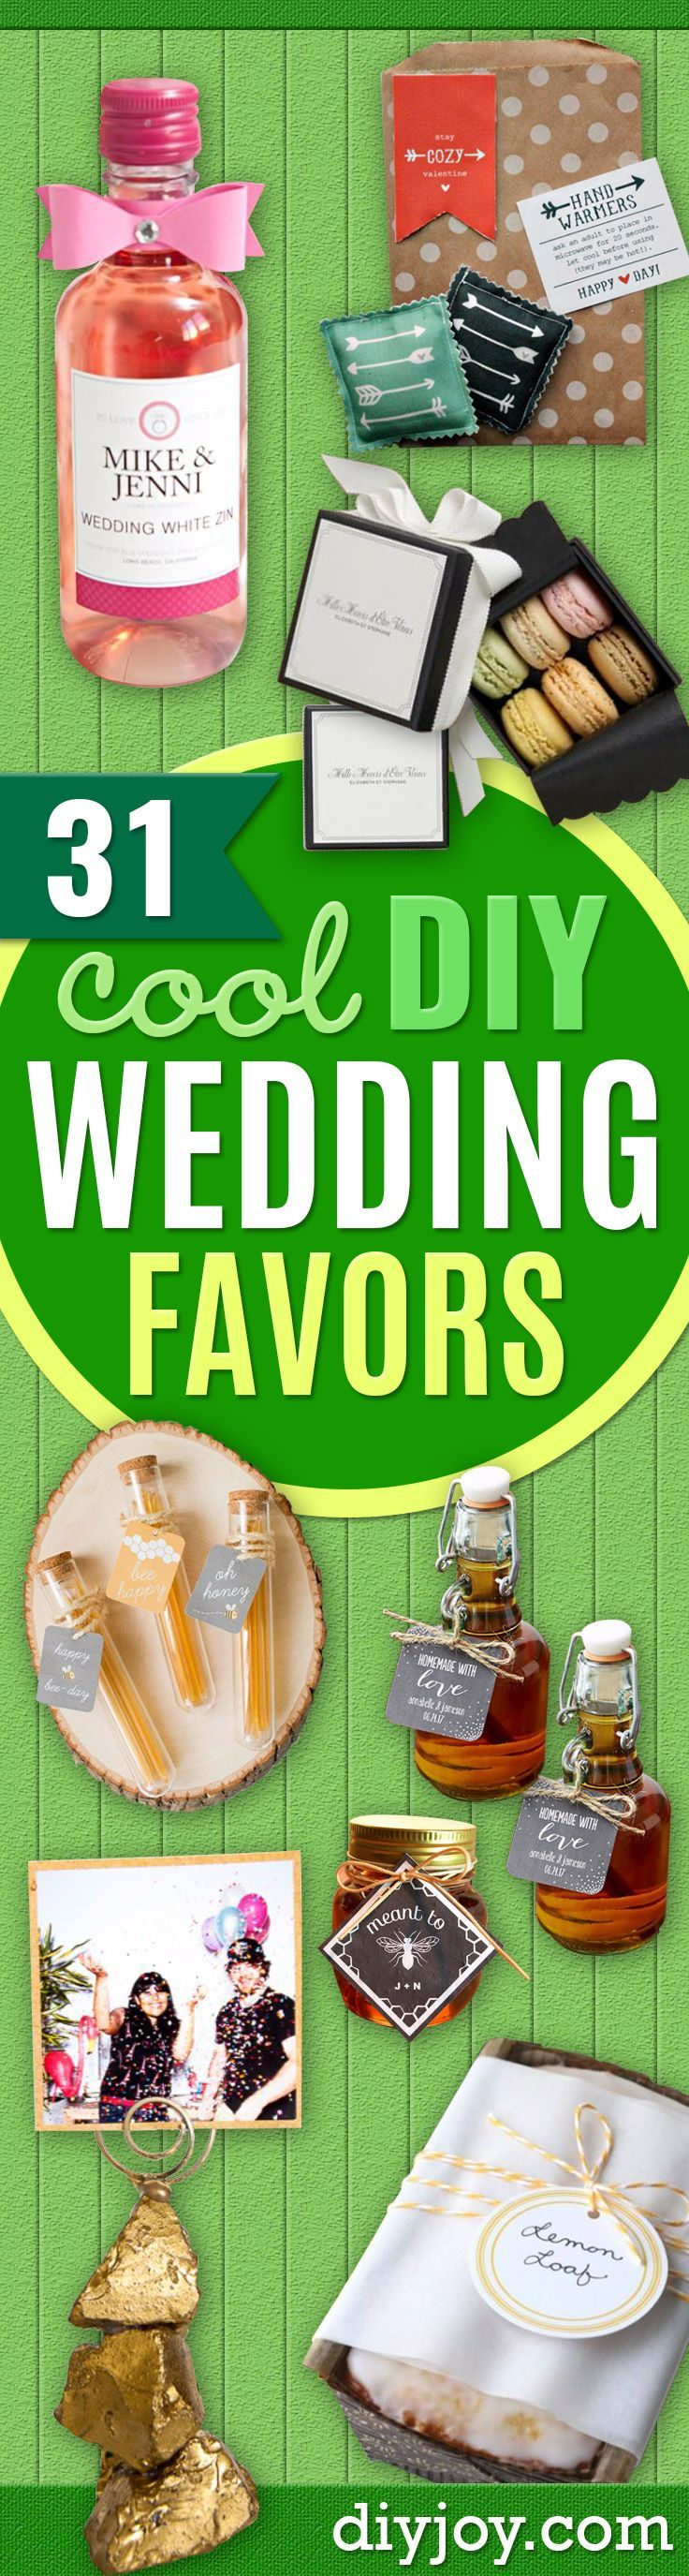 DIY Wedding Favors  Do It Yourself Ideas for Brides and Best